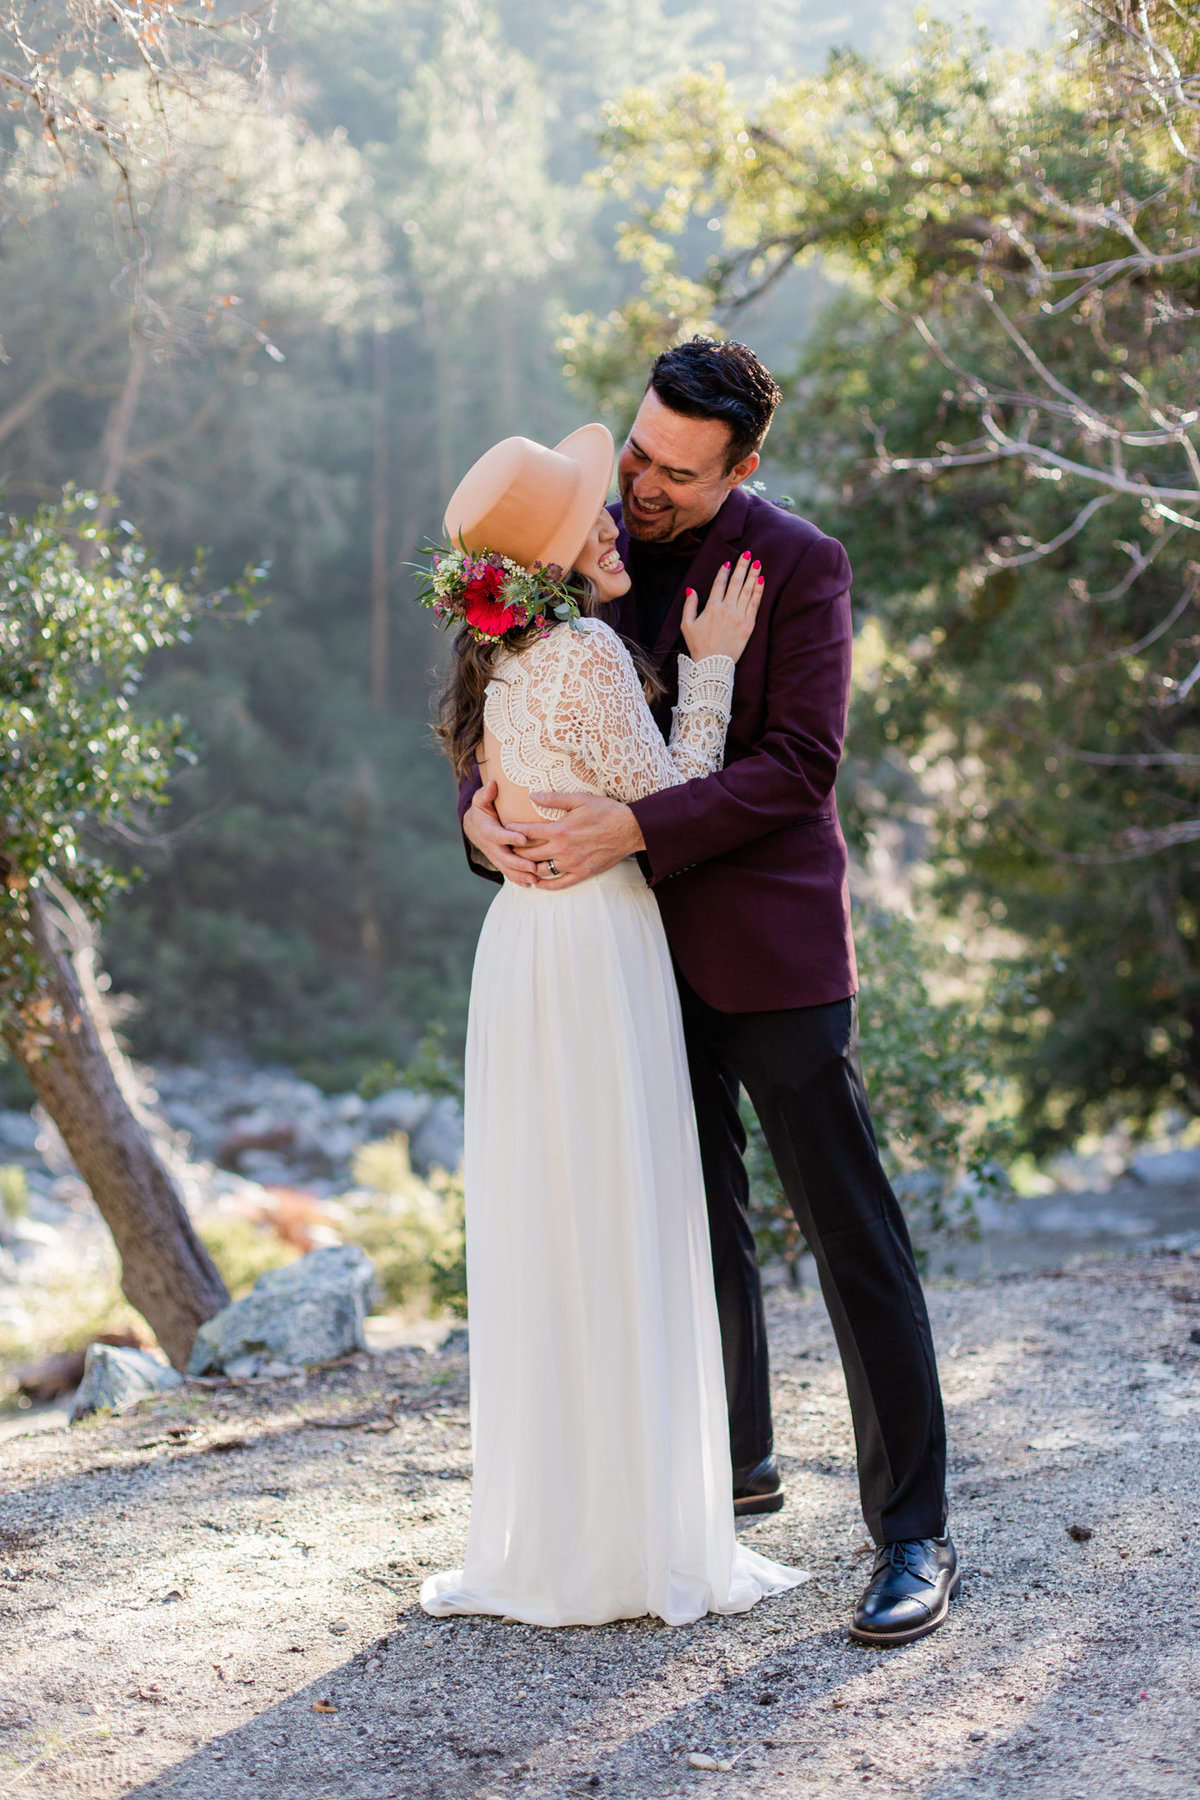 Mt. Baldy Elopement, Mt. Baldy Styled Shoot, Mt. Baldy Wedding, Forest Elopement, Forest Wedding, Boho Wedding, Boho Elopement, Mt. Baldy Boho, Forest Boho, Woodland Boho-8